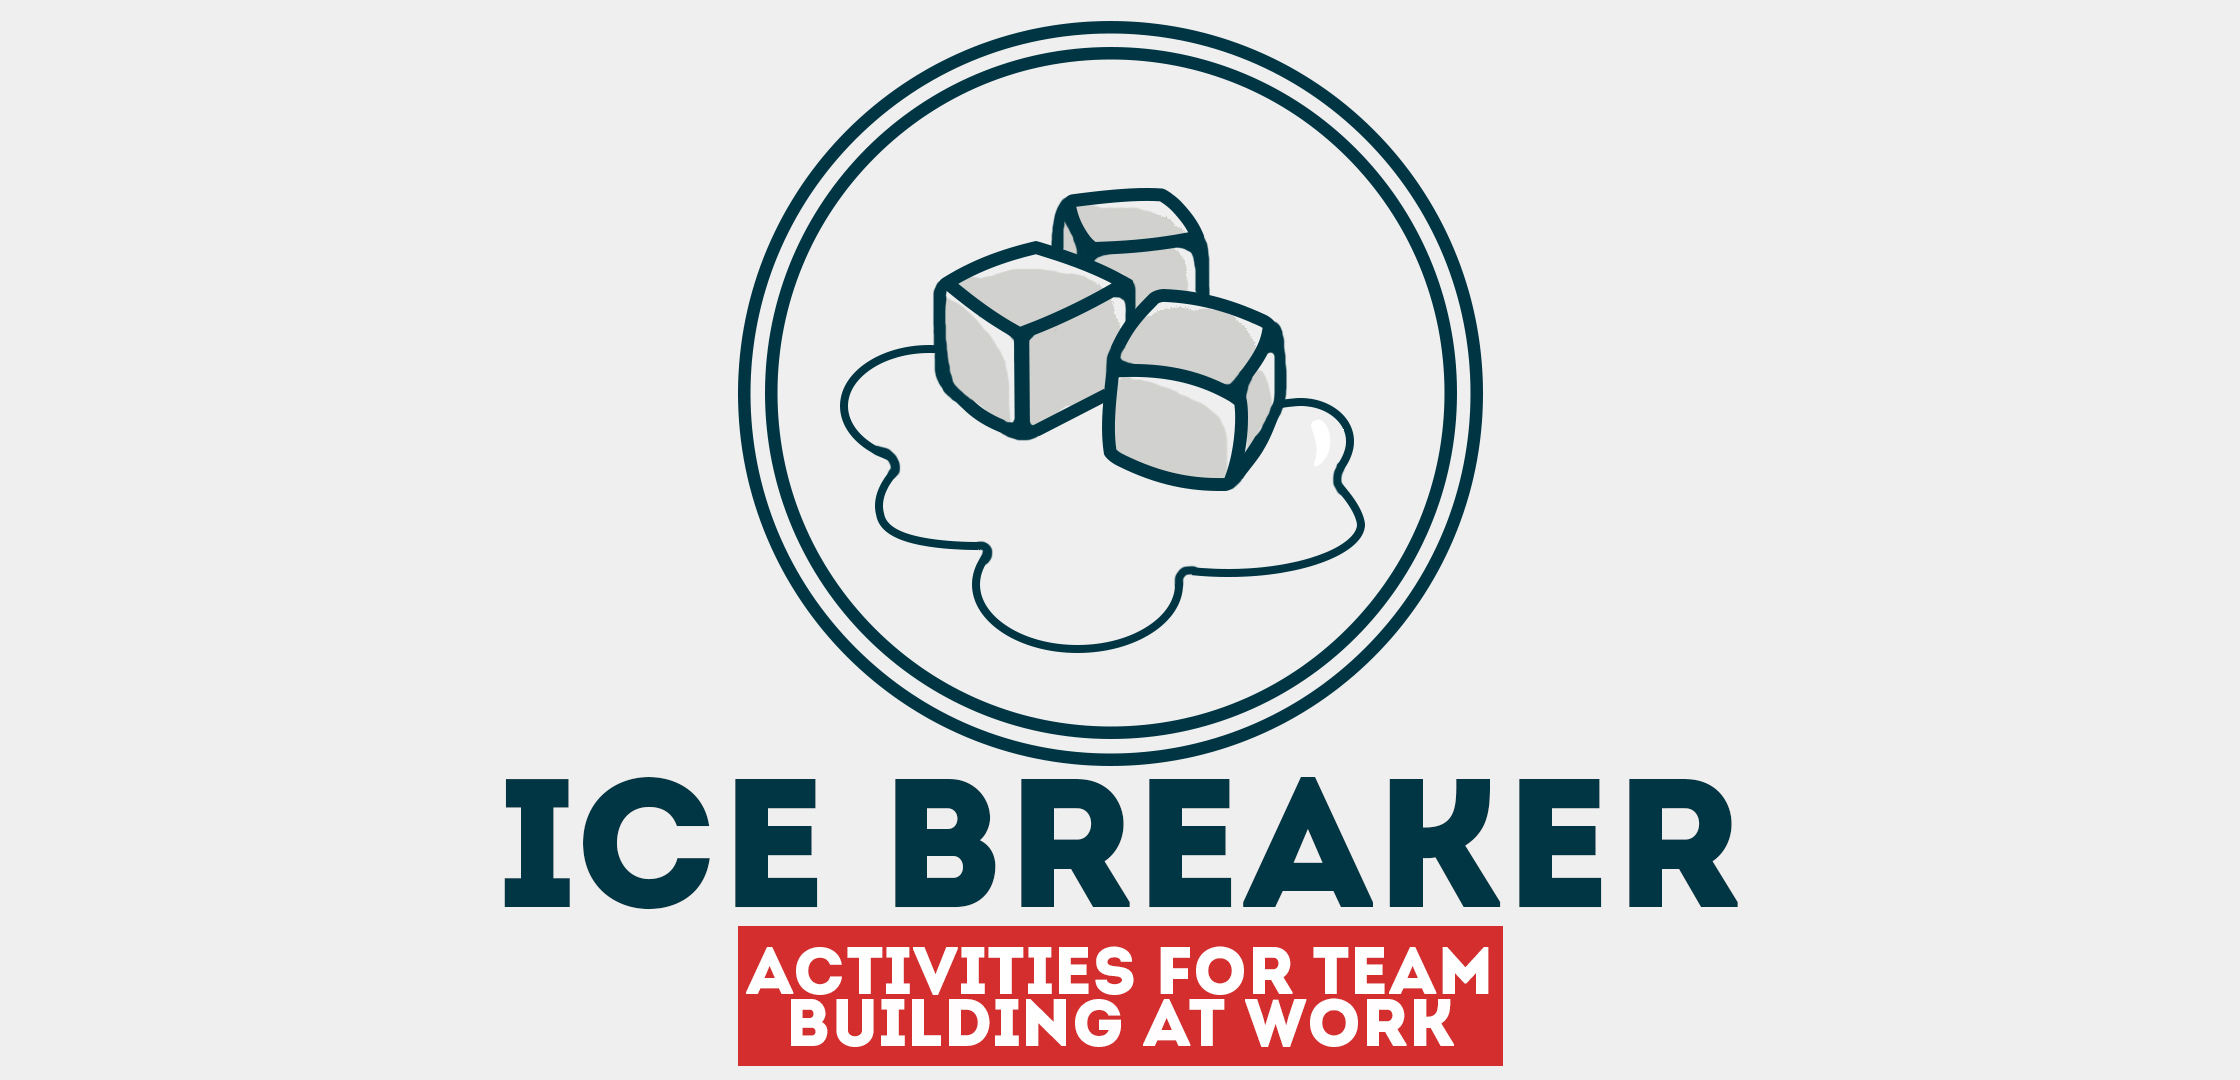 3 Great Ice Breaker Activities for Team Building at Work